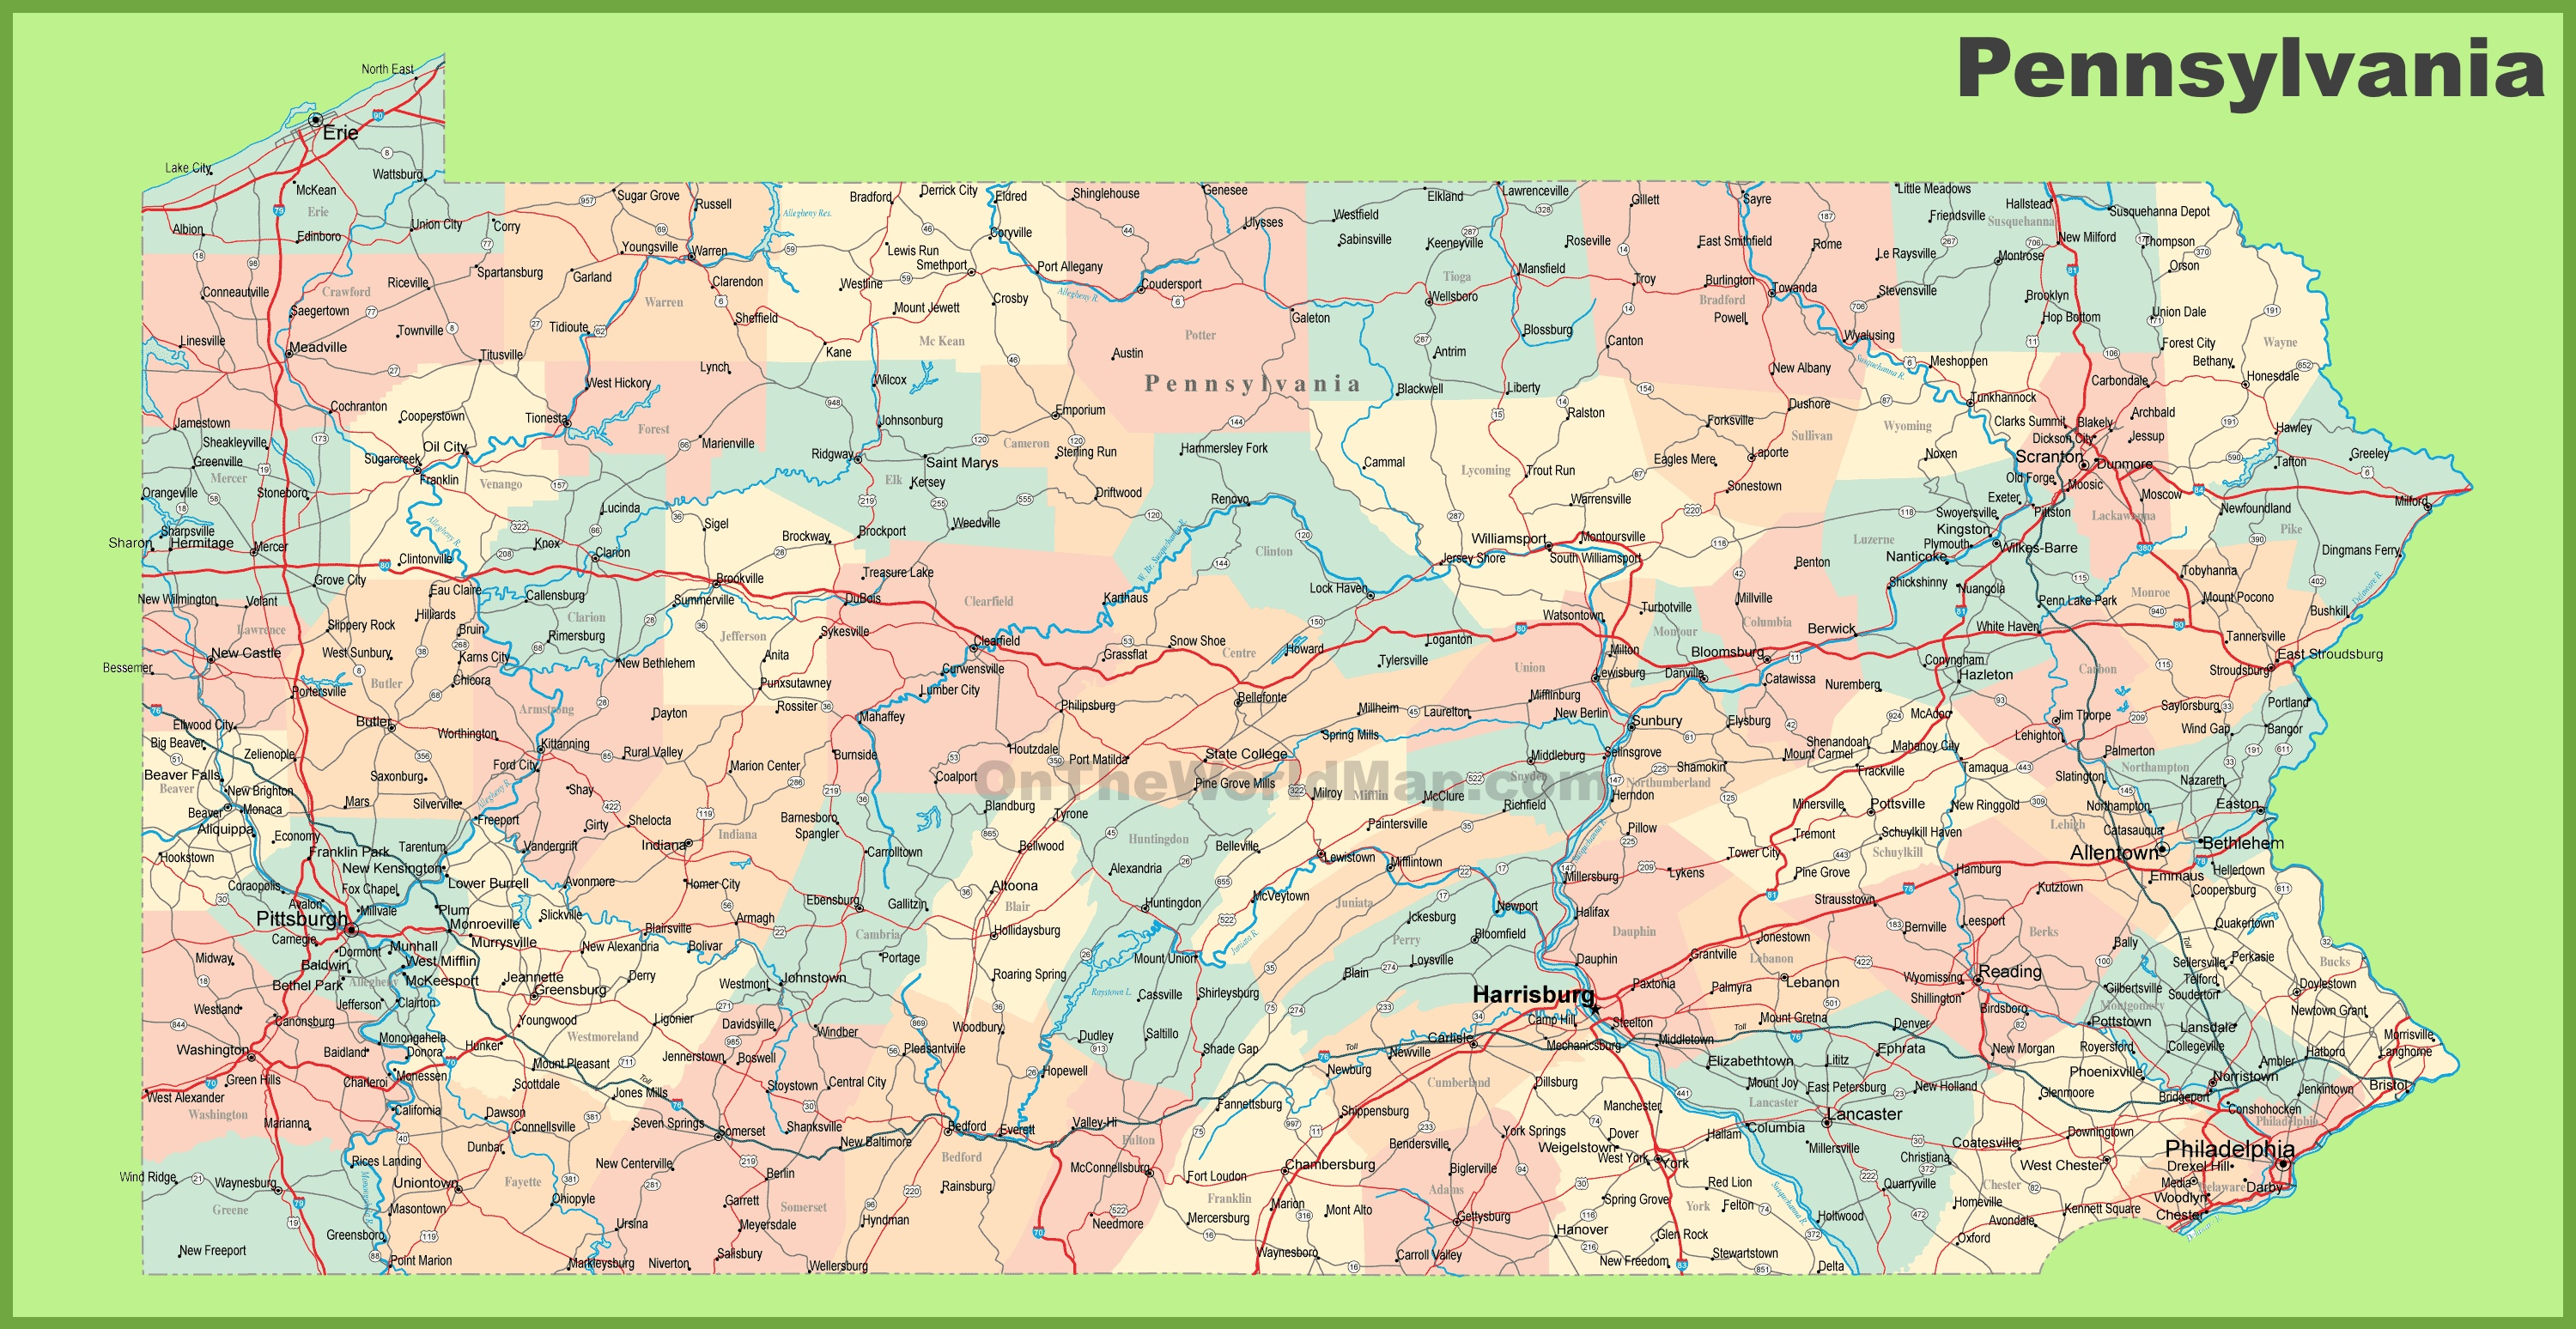 Pennsylvania Road Map Road map of Pennsylvania with cities